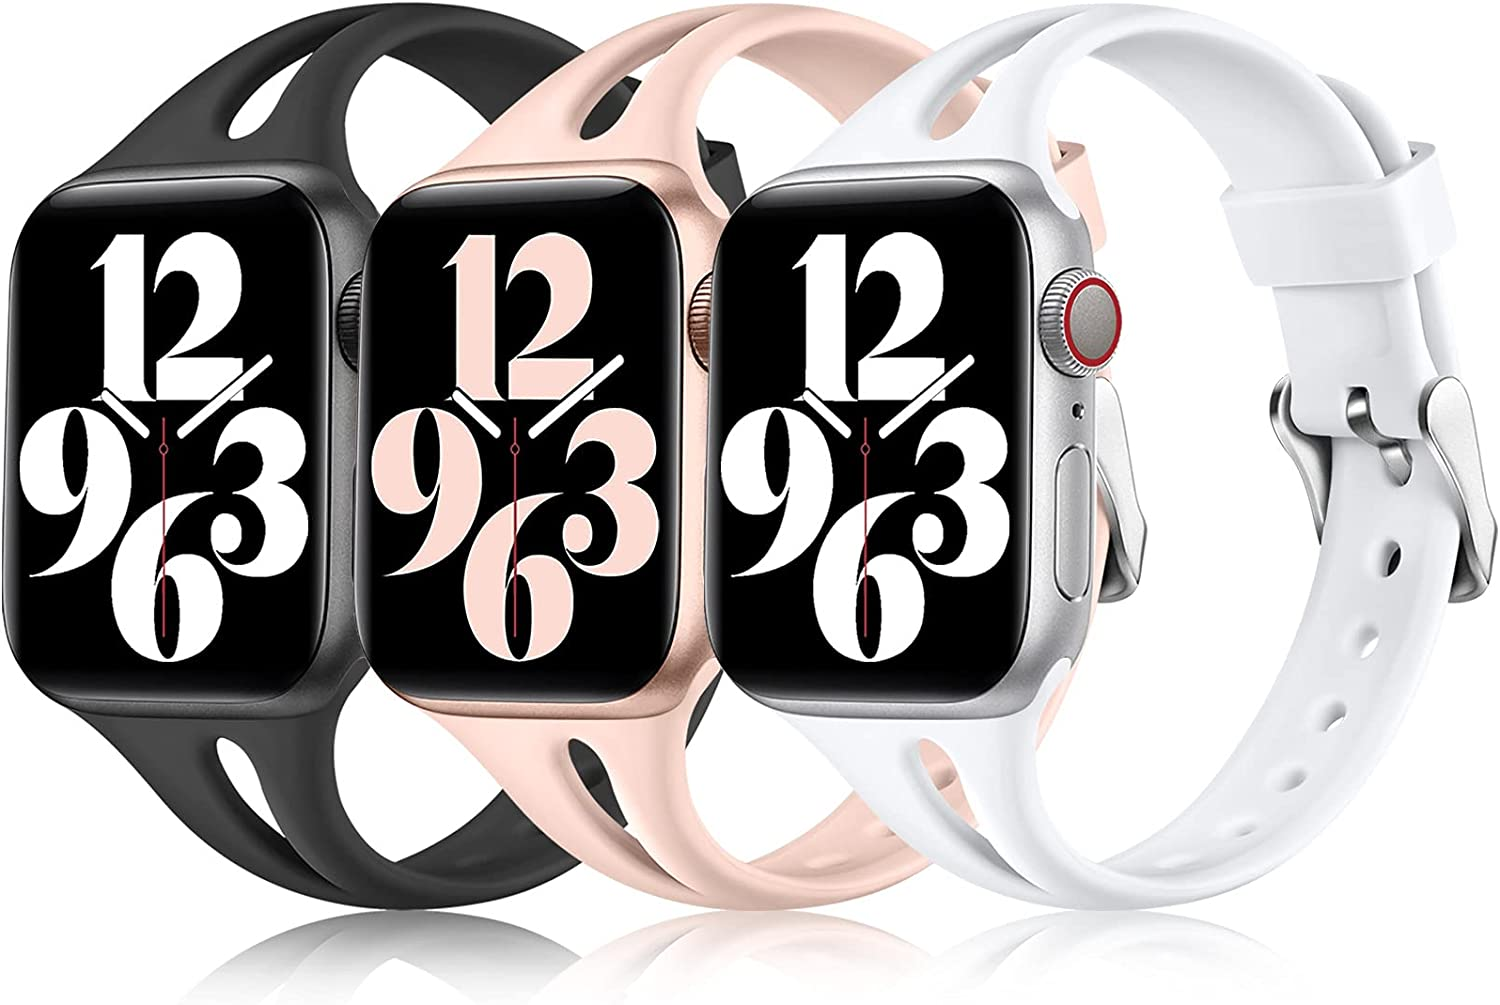 Laffav Compatible With Apple Watch Band 40mm 38mm for Women Girls, Slim Soft Silicone Sport Replacement Wristband for iWatch SE & Series 6 & Series 5 4 3 2 1, Black/White/Pink Sand 38mm/40mm S/M